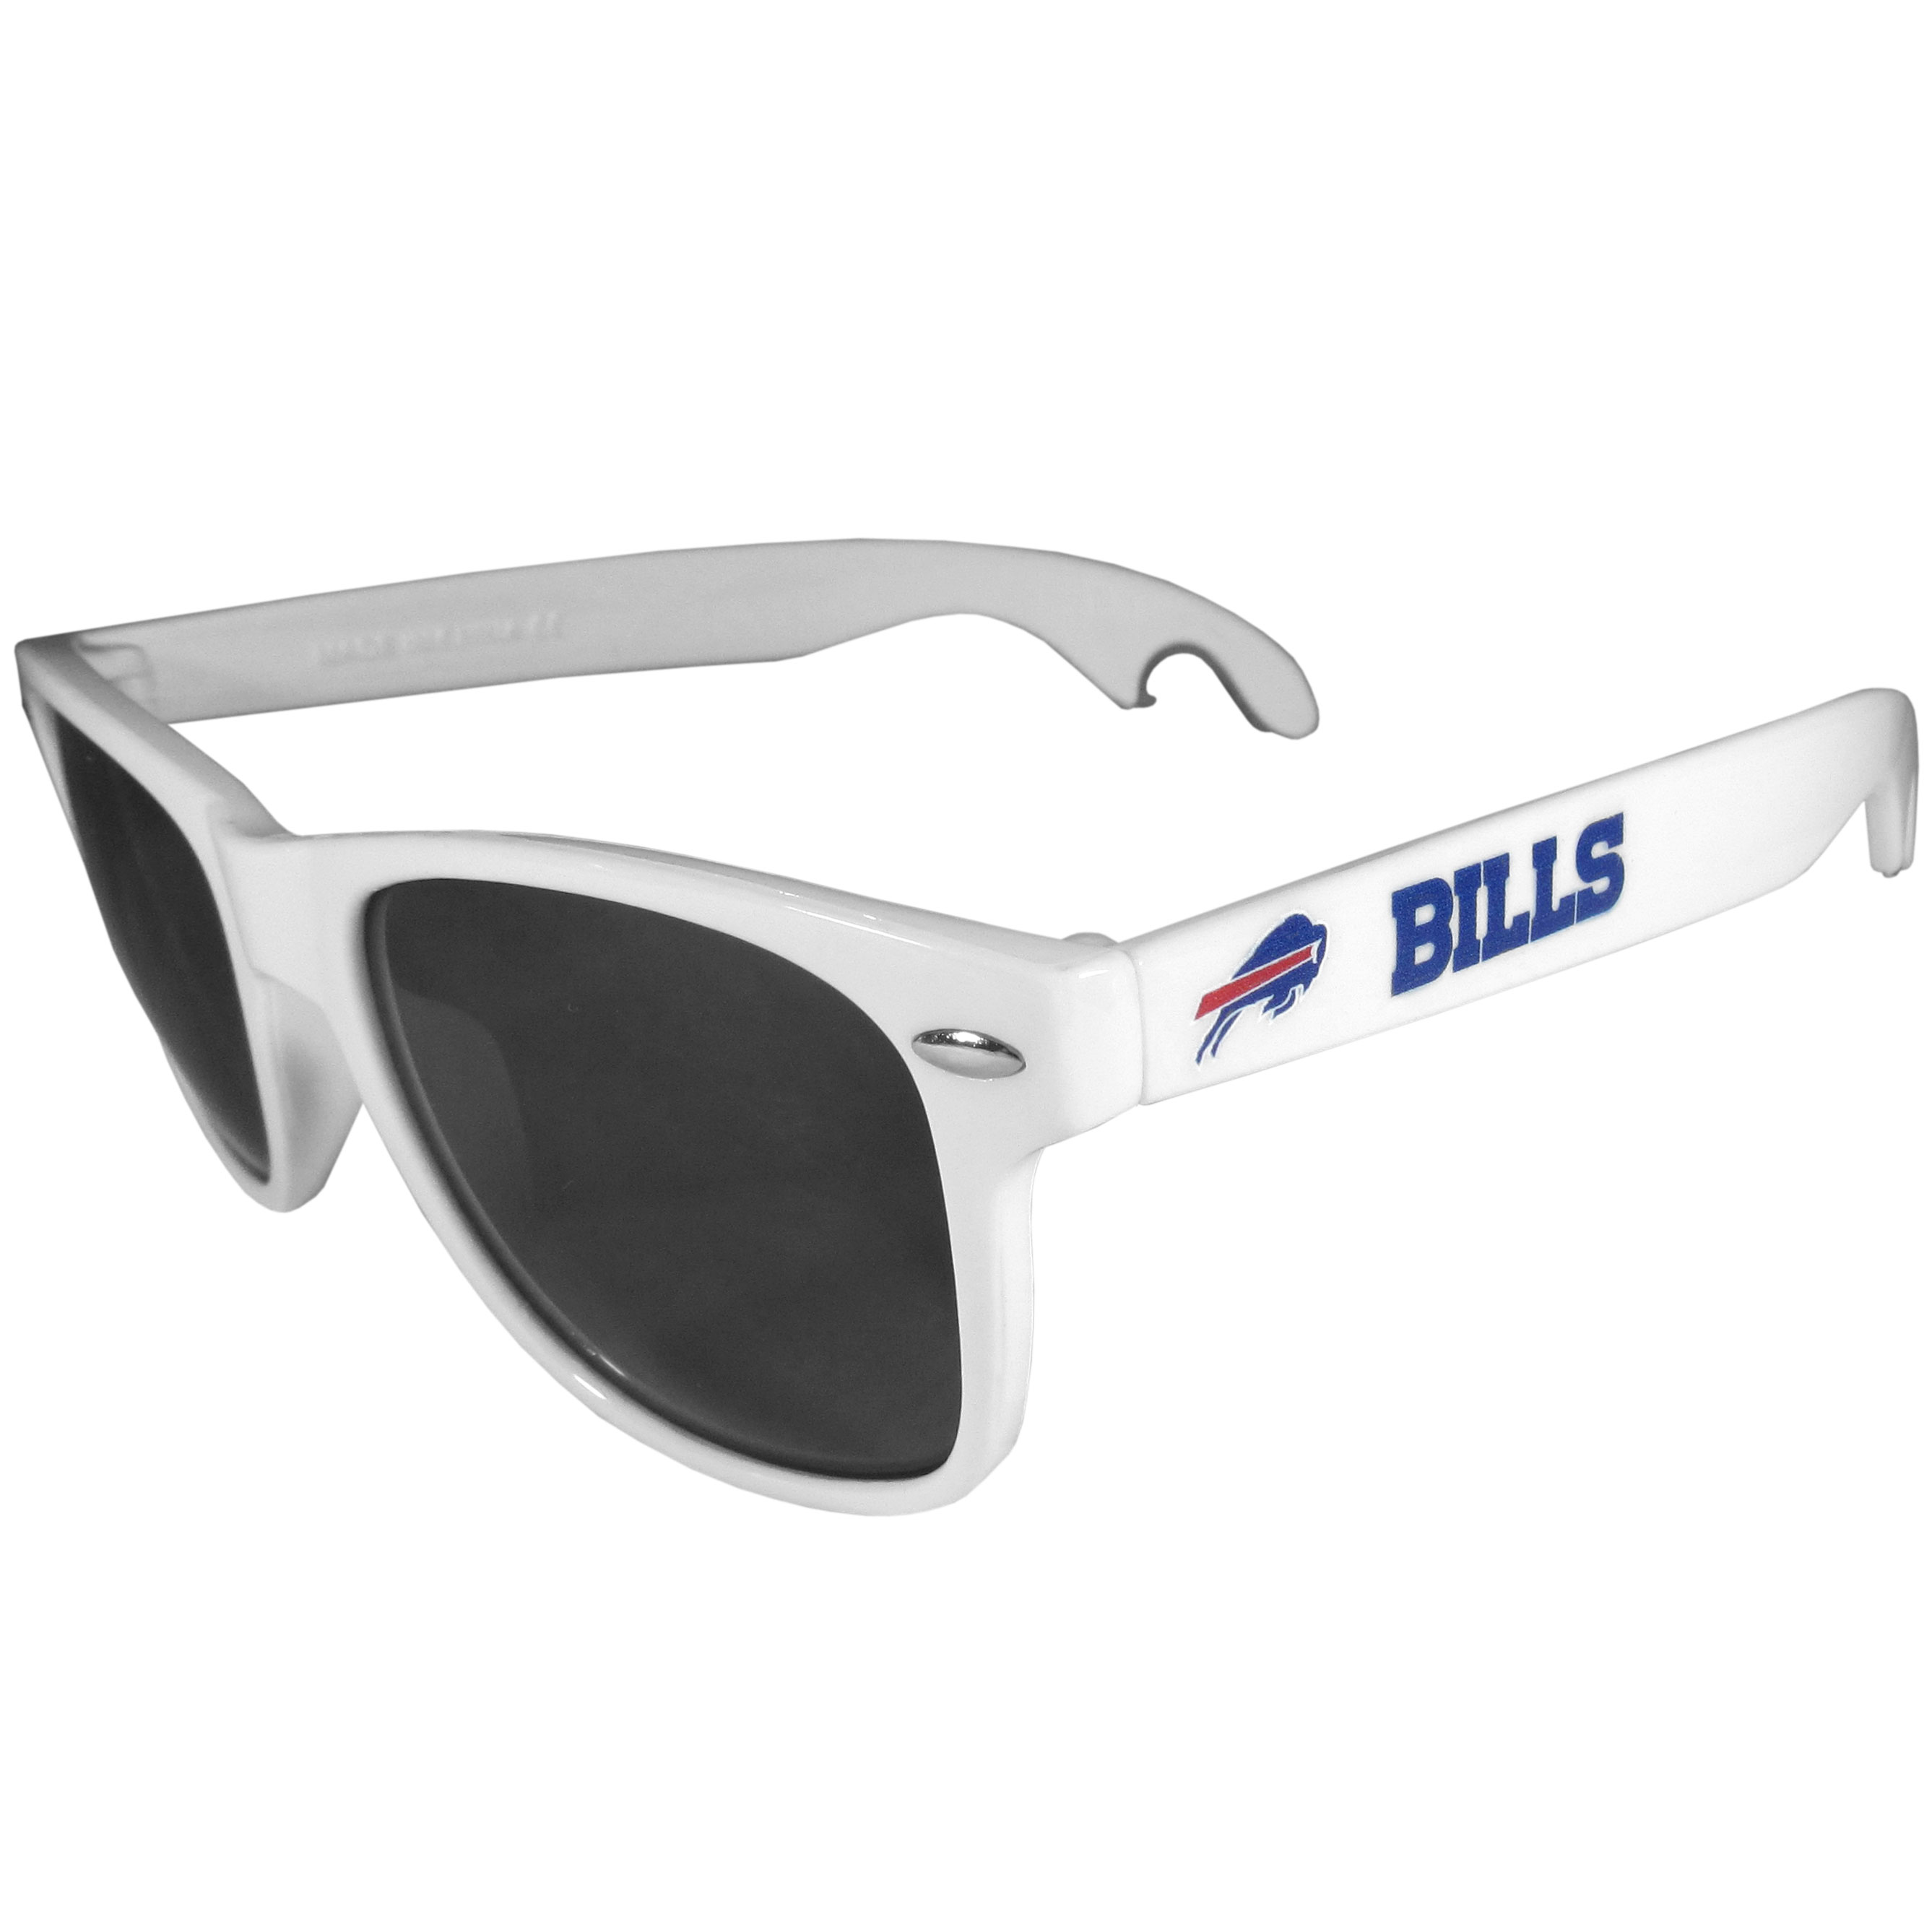 Buffalo Bills Beachfarer Bottle Opener Sunglasses, White - Seriously, these sunglasses open bottles! Keep the party going with these amazing Buffalo Bills bottle opener sunglasses. The stylish retro frames feature team designs on the arms and functional bottle openers on the end of the arms. Whether you are at the beach or having a backyard BBQ on game day, these shades will keep your eyes protected with 100% UVA/UVB protection and keep you hydrated with the handy bottle opener arms.